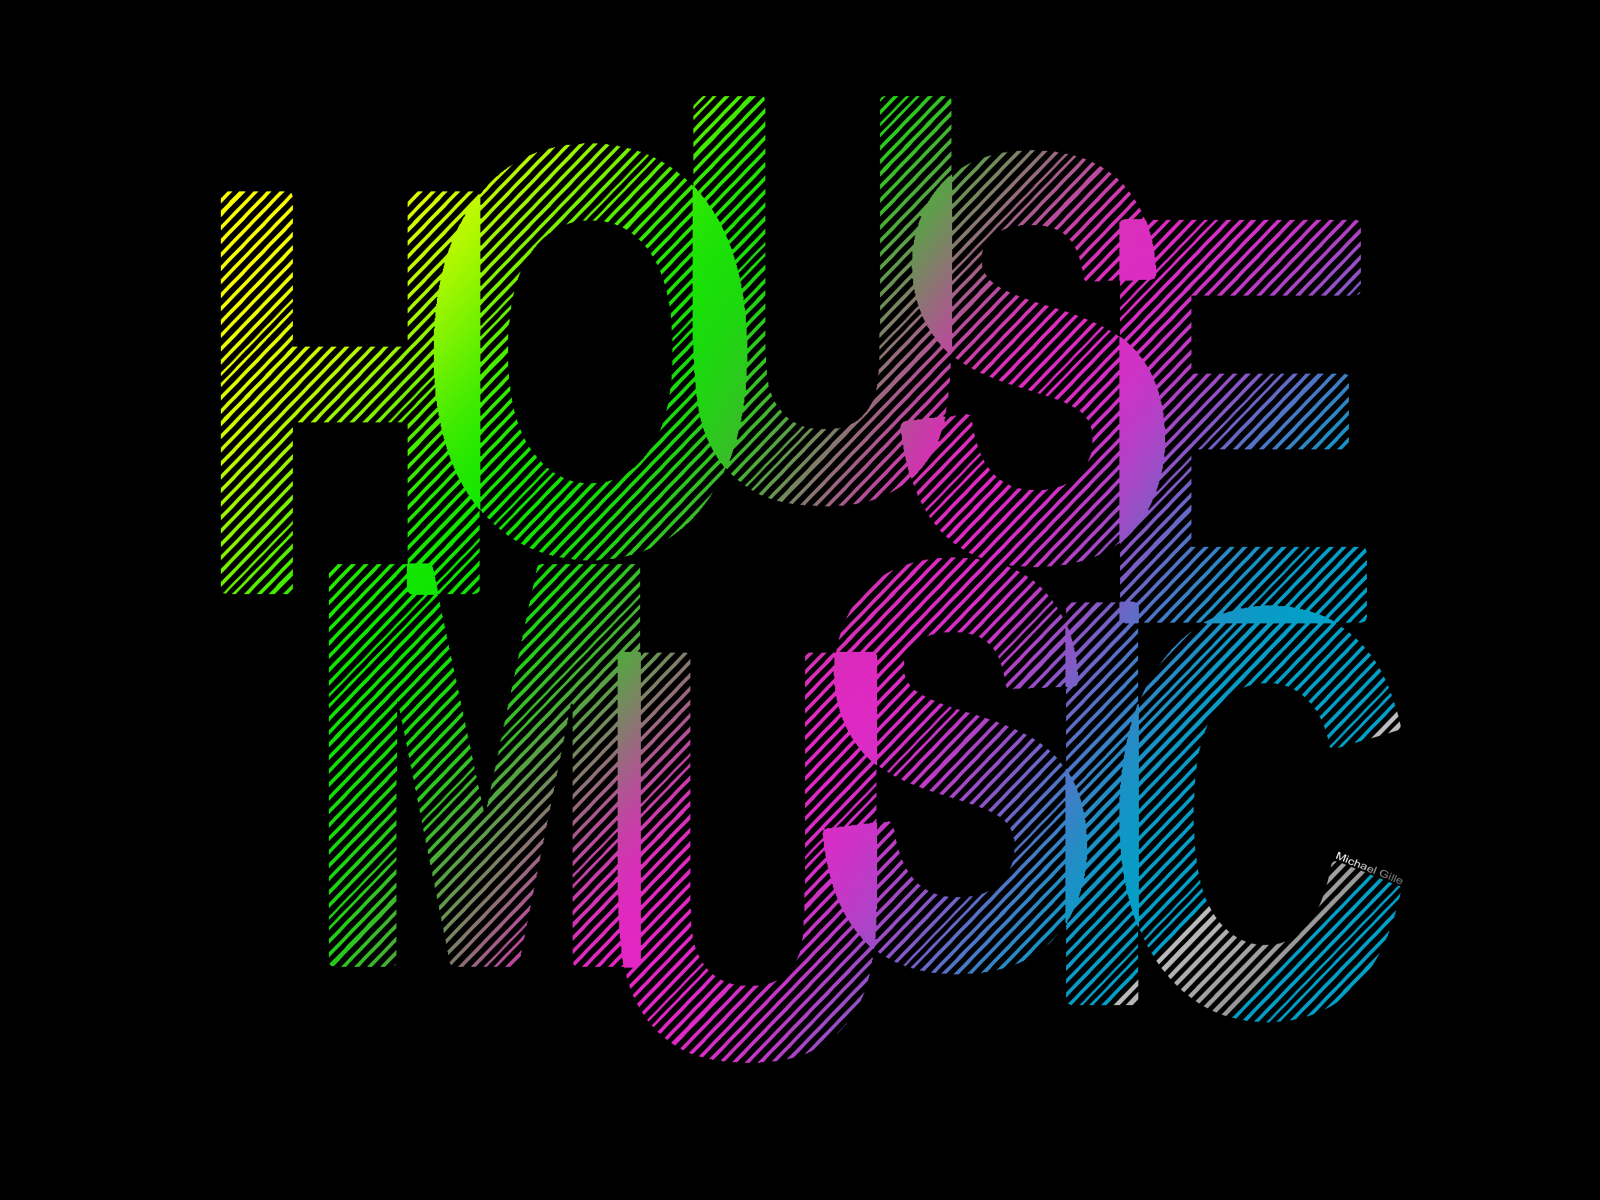 Coffmingjack — download free house music albums mp3.